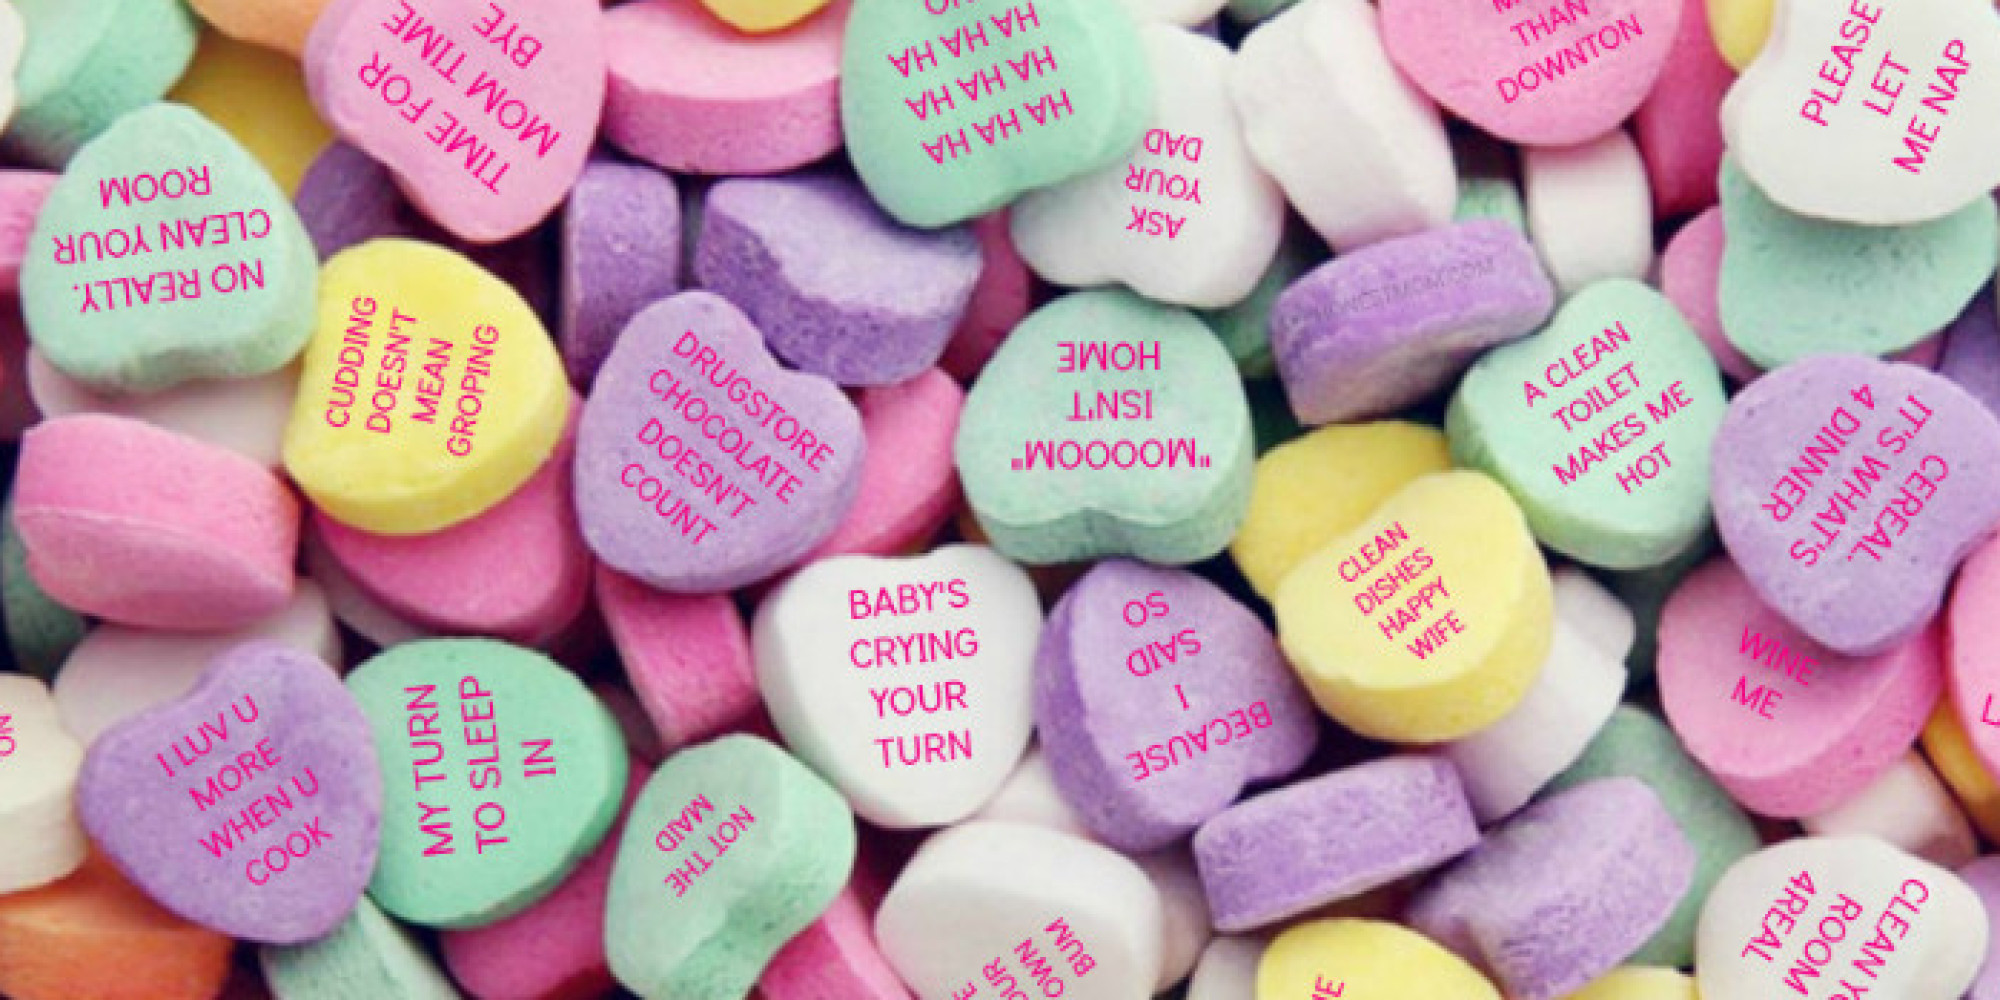 valentines day meme for a broken heat - If Moms Wrote Candy Conversation Hearts